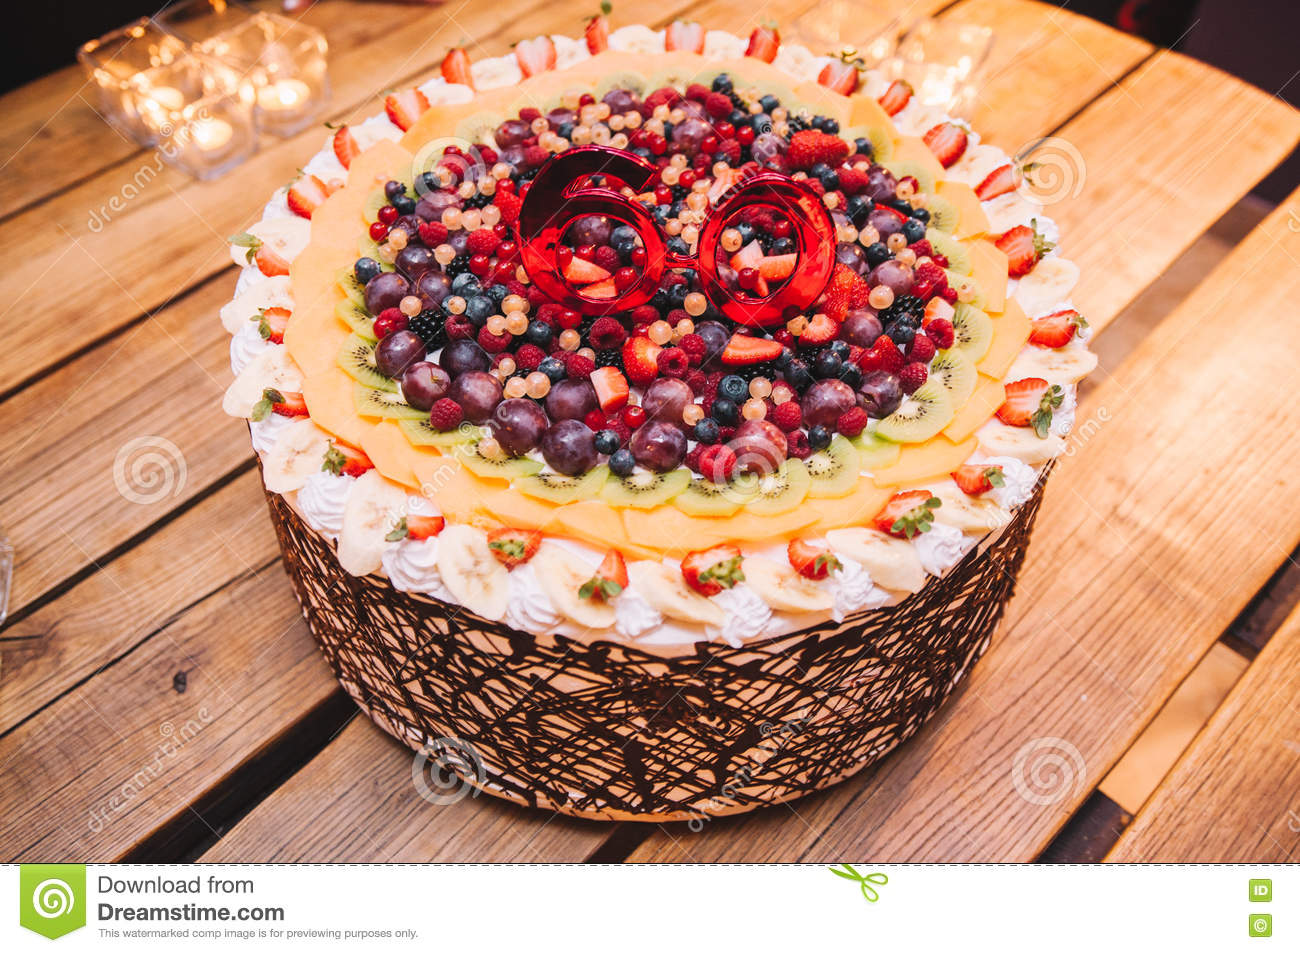 Tasty Colorful And Delicious Fruit Cake For A 60th Birthday Party